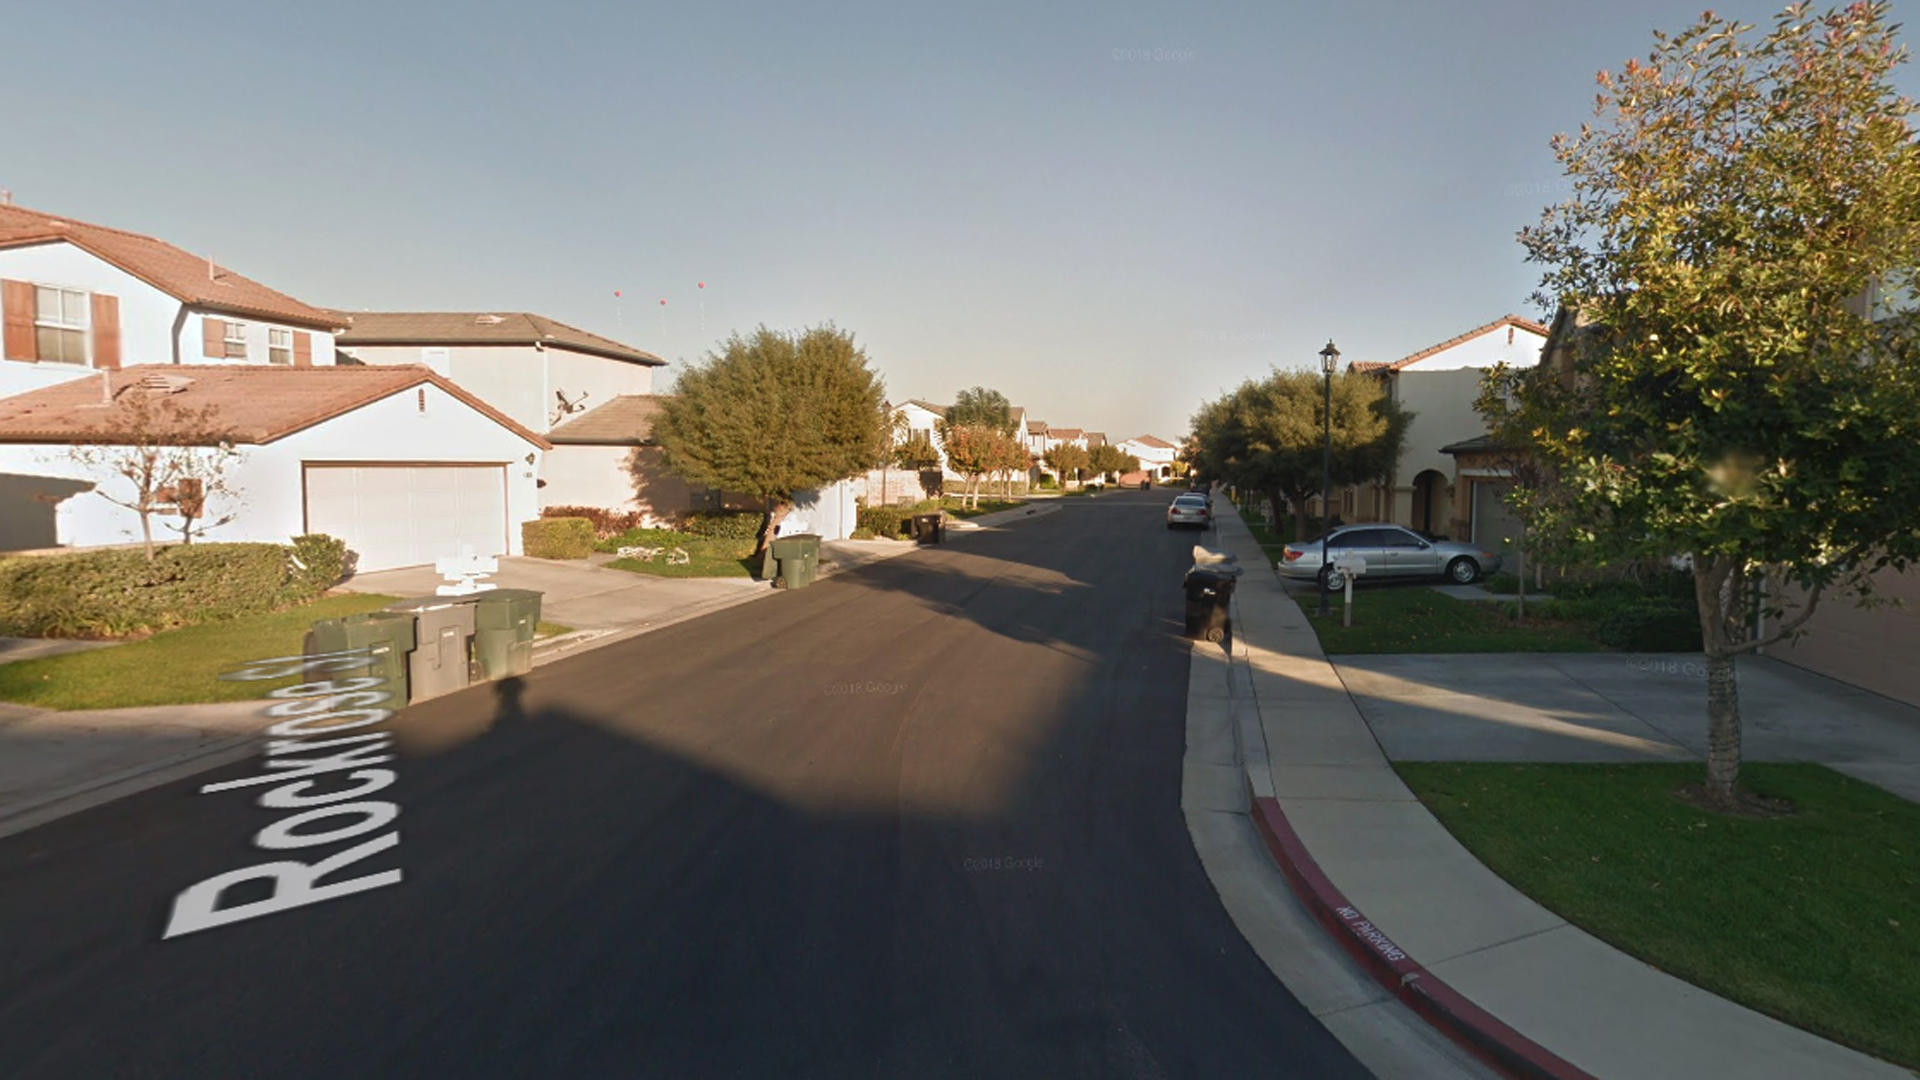 The 6800 block of Rockrose Street in Chino, as viewed in a Google Street View image in December of 2014.